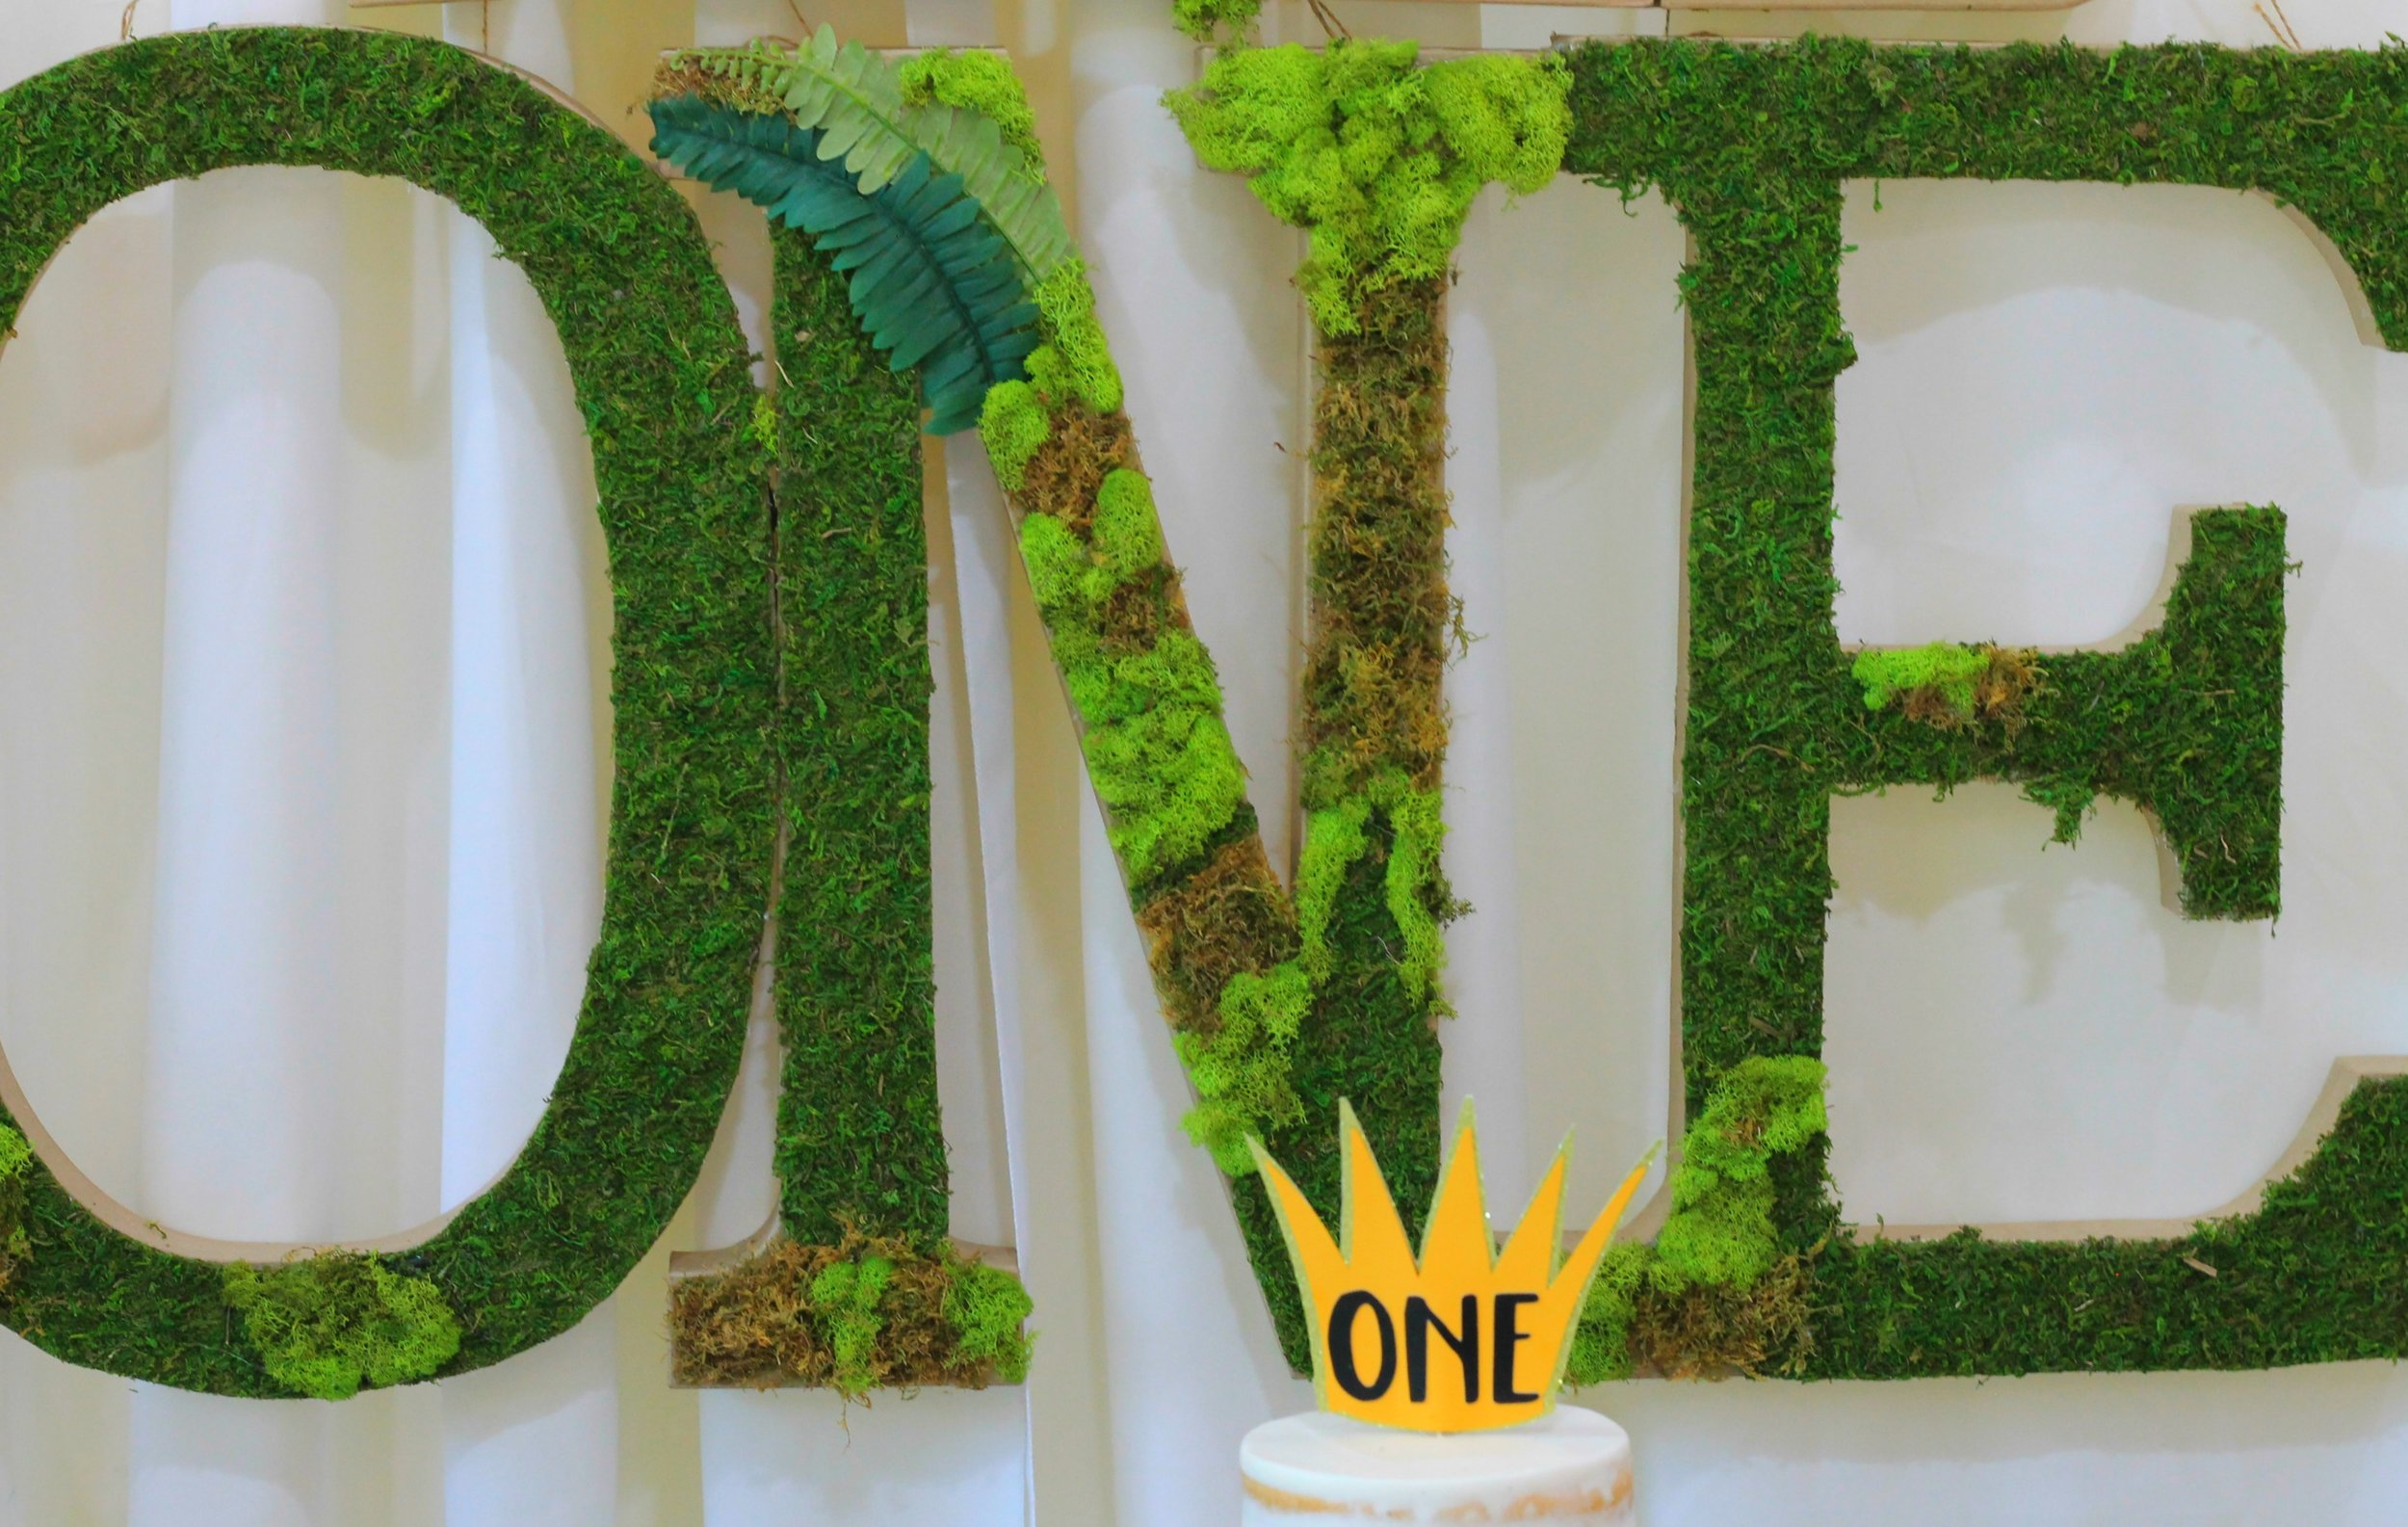 Wild One-Moss Letters-One-wild one birthday decor-first birthday decor ideas-moss-wild one party decor-www.sugarpartiesla.com.jpg